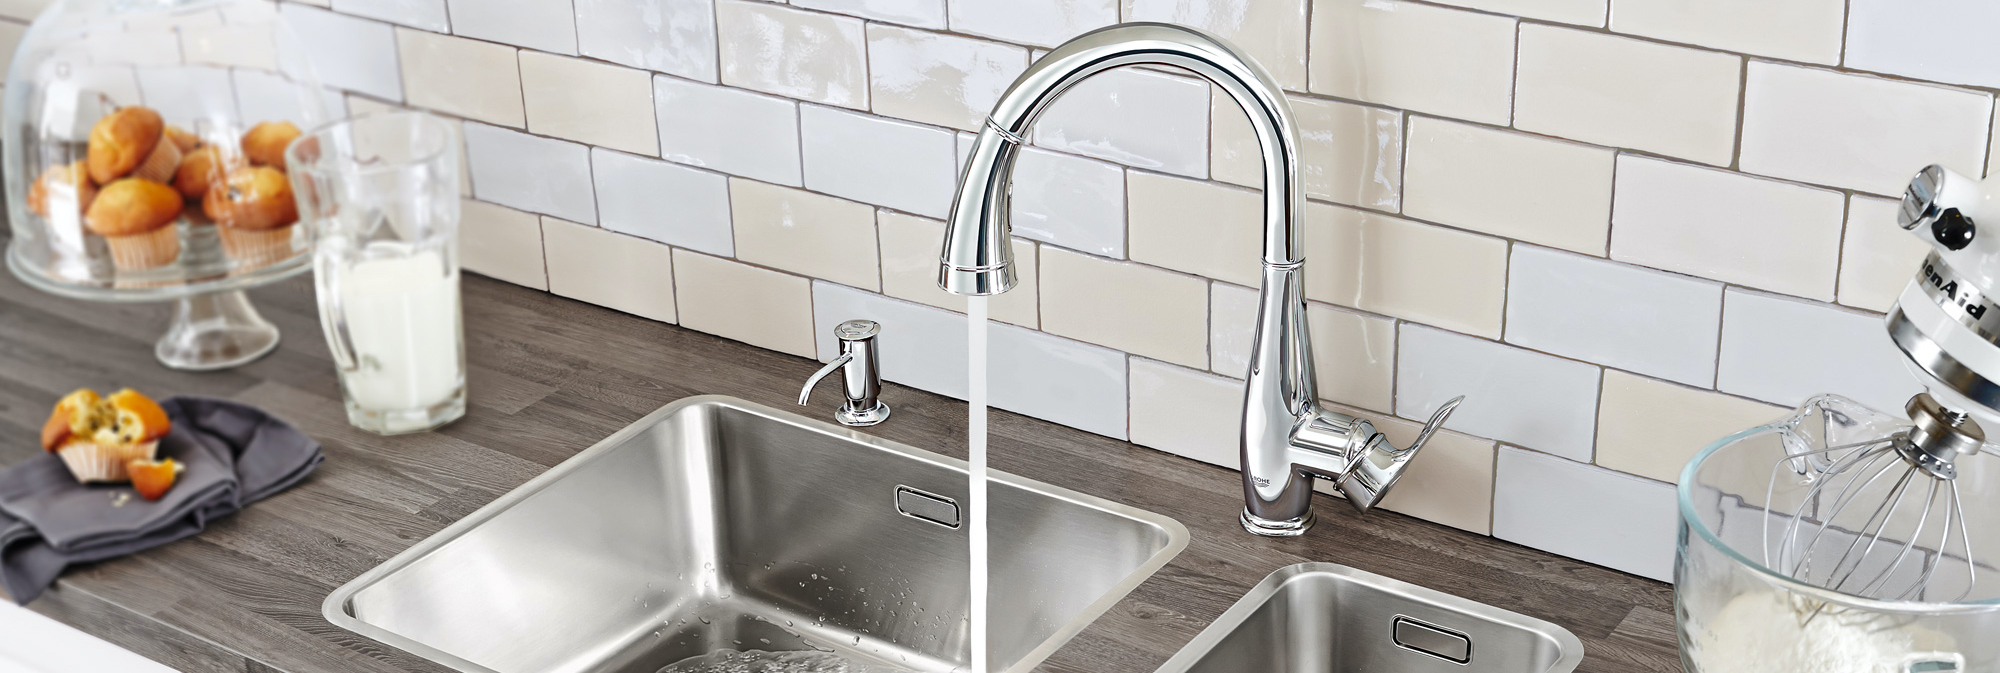 Faucet with water running in kitchen